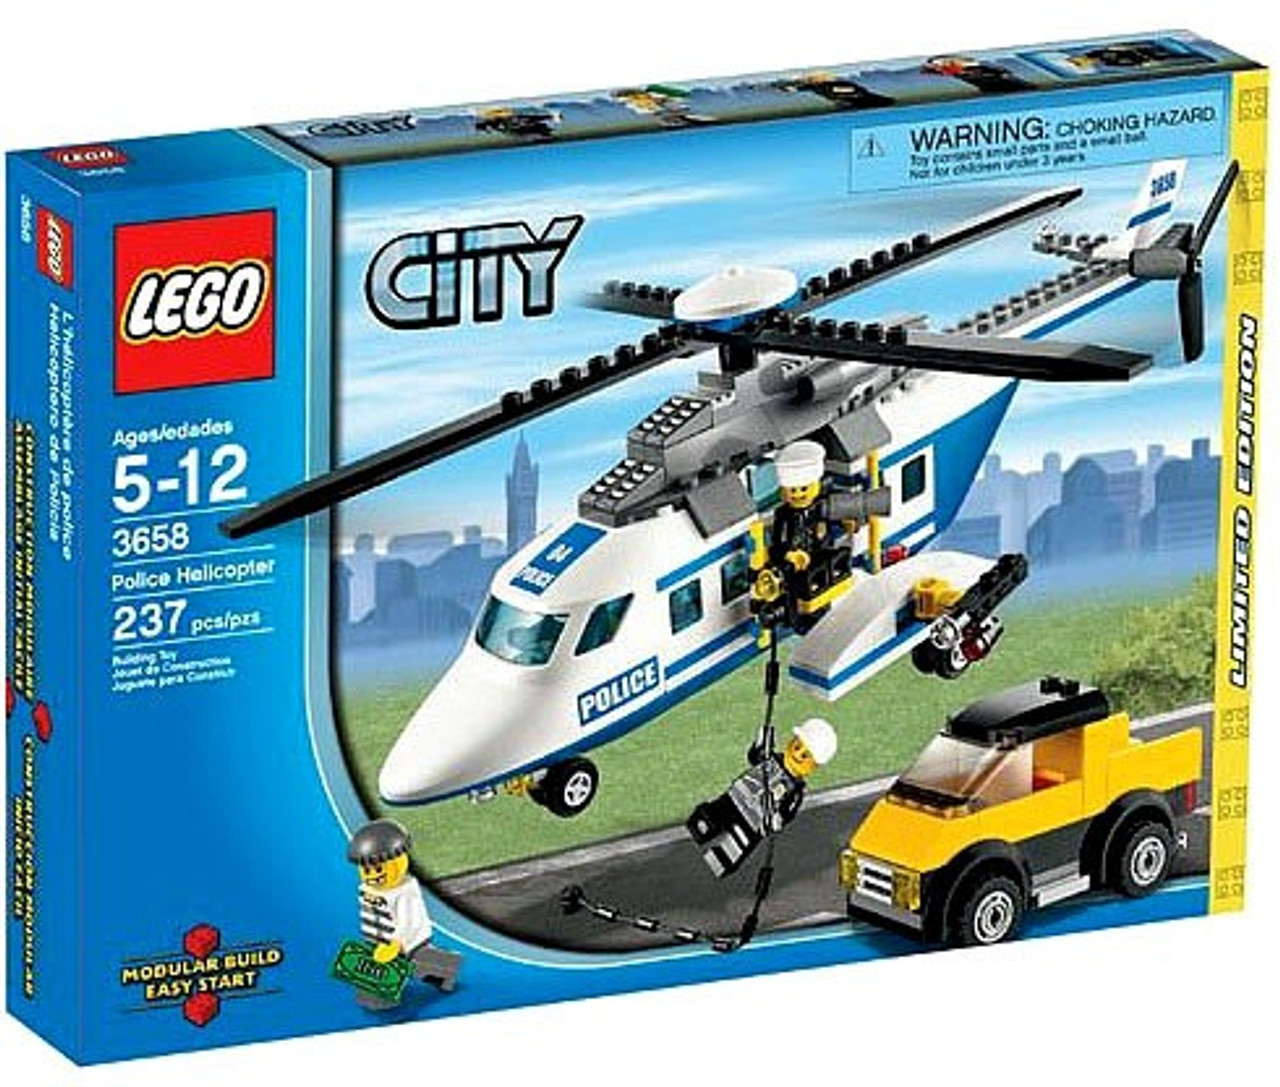 LEGO City Police Helicopter Exclusive Set #3658